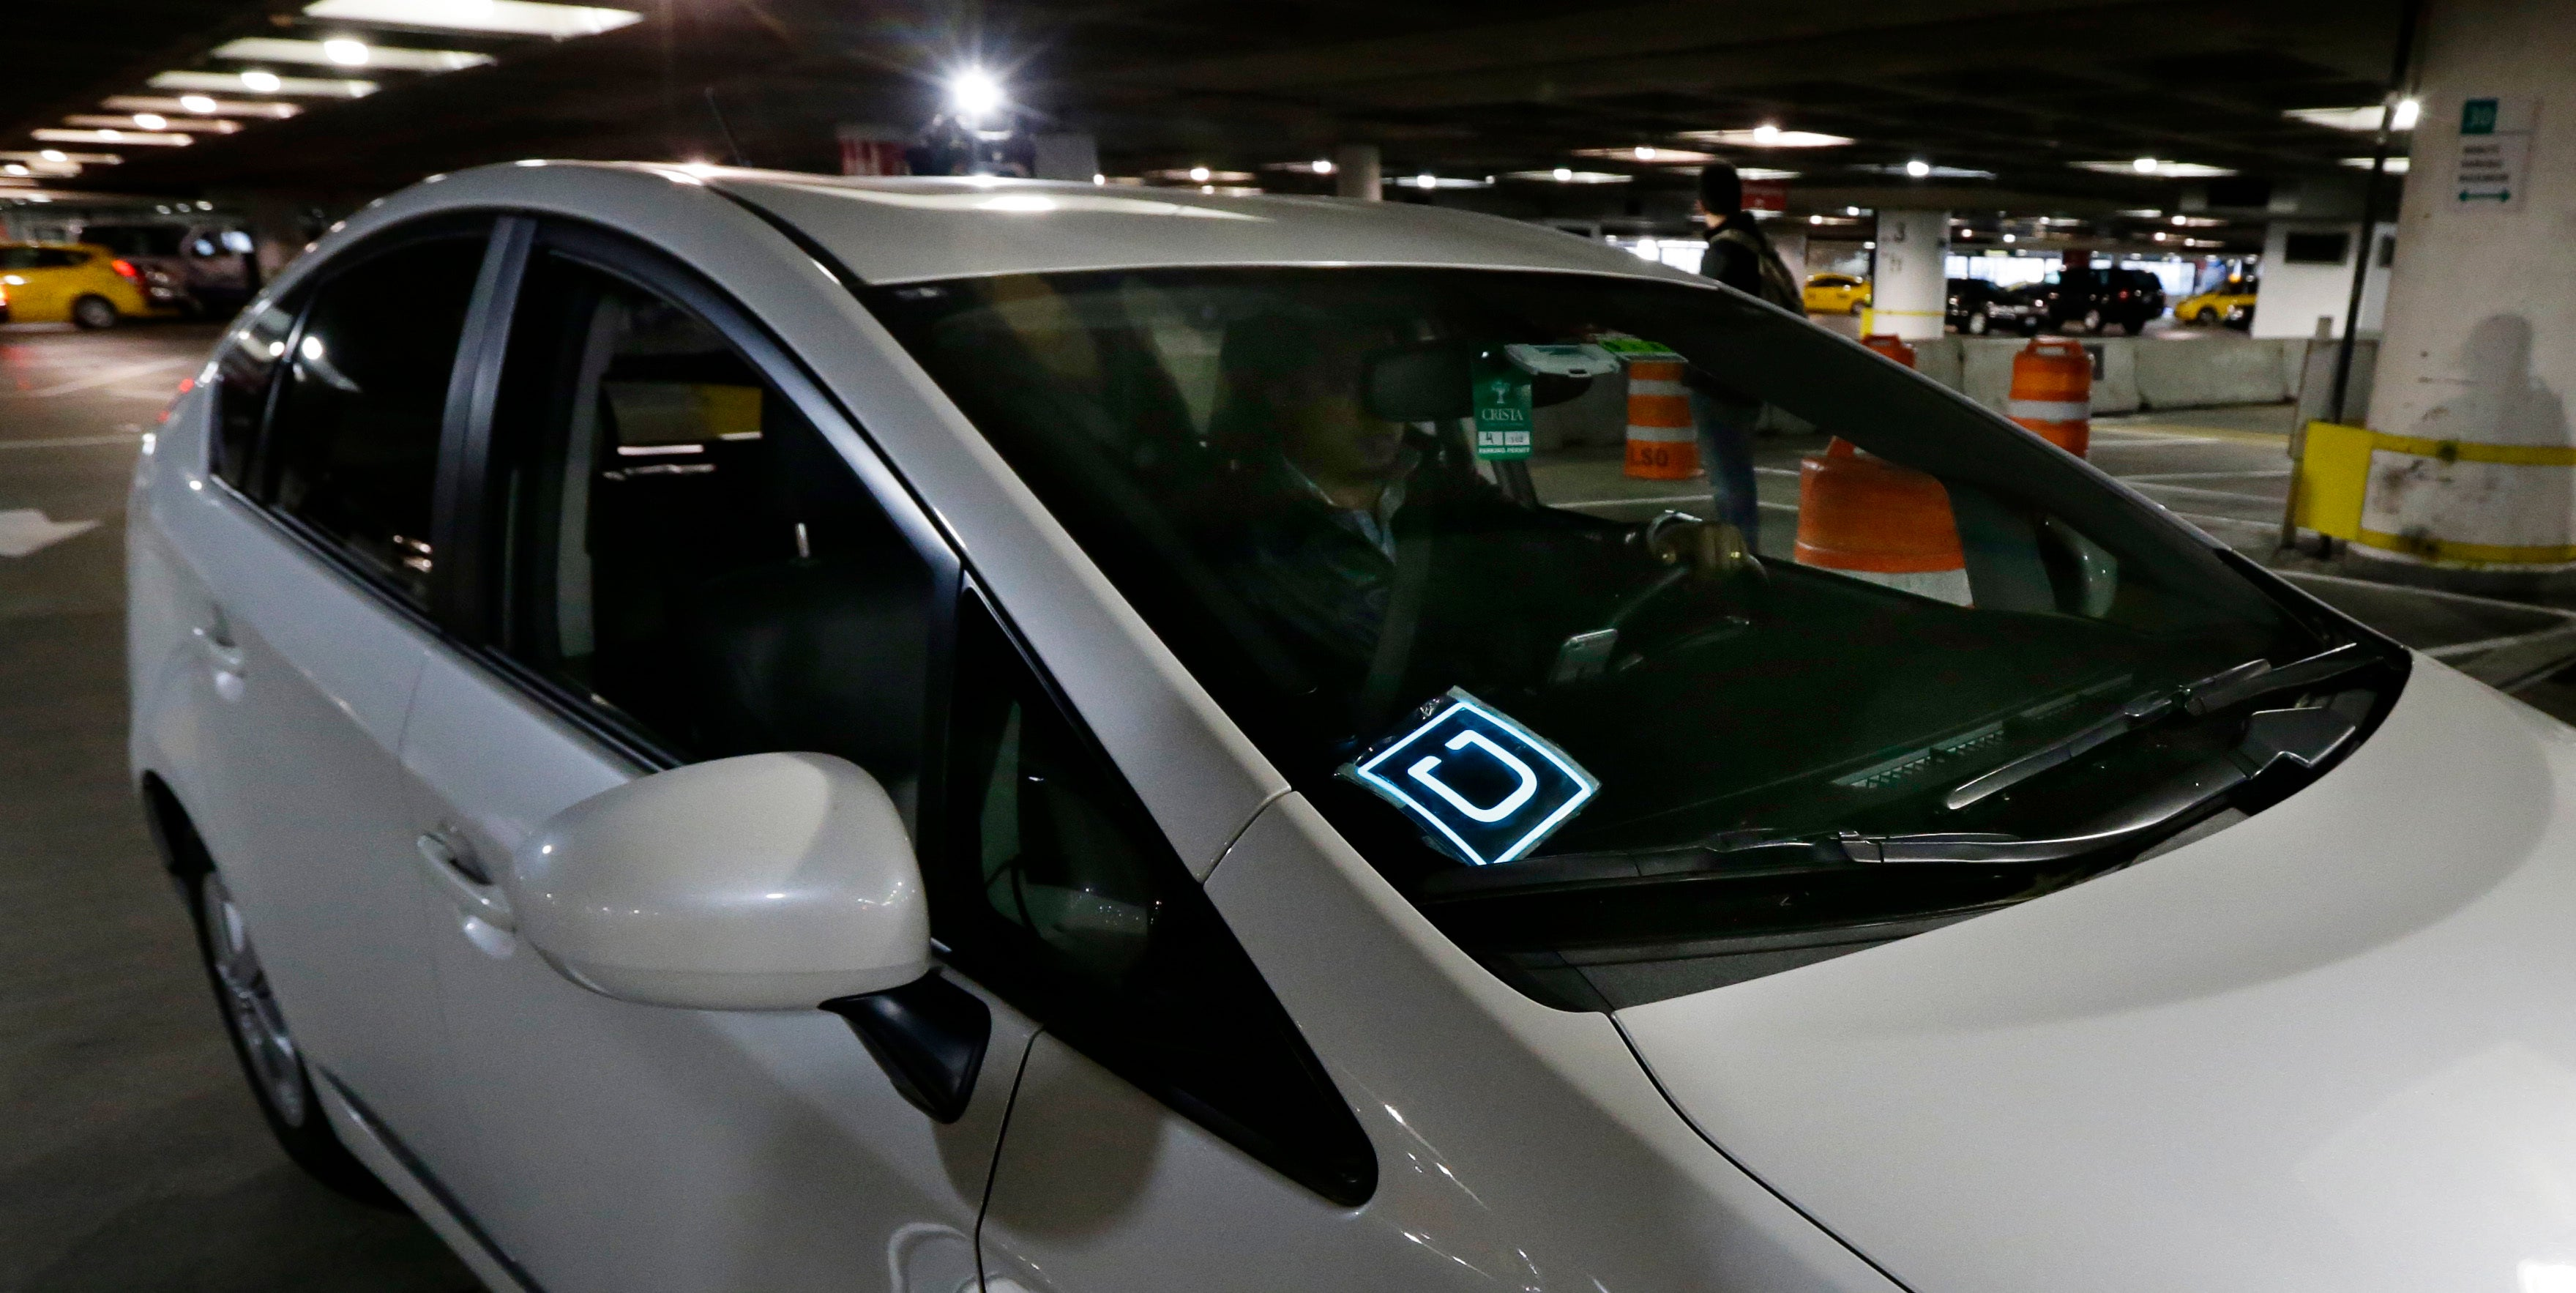 Massachusetts Is Trying To Settle Its Issues With Uber With A 20 Cent Fee